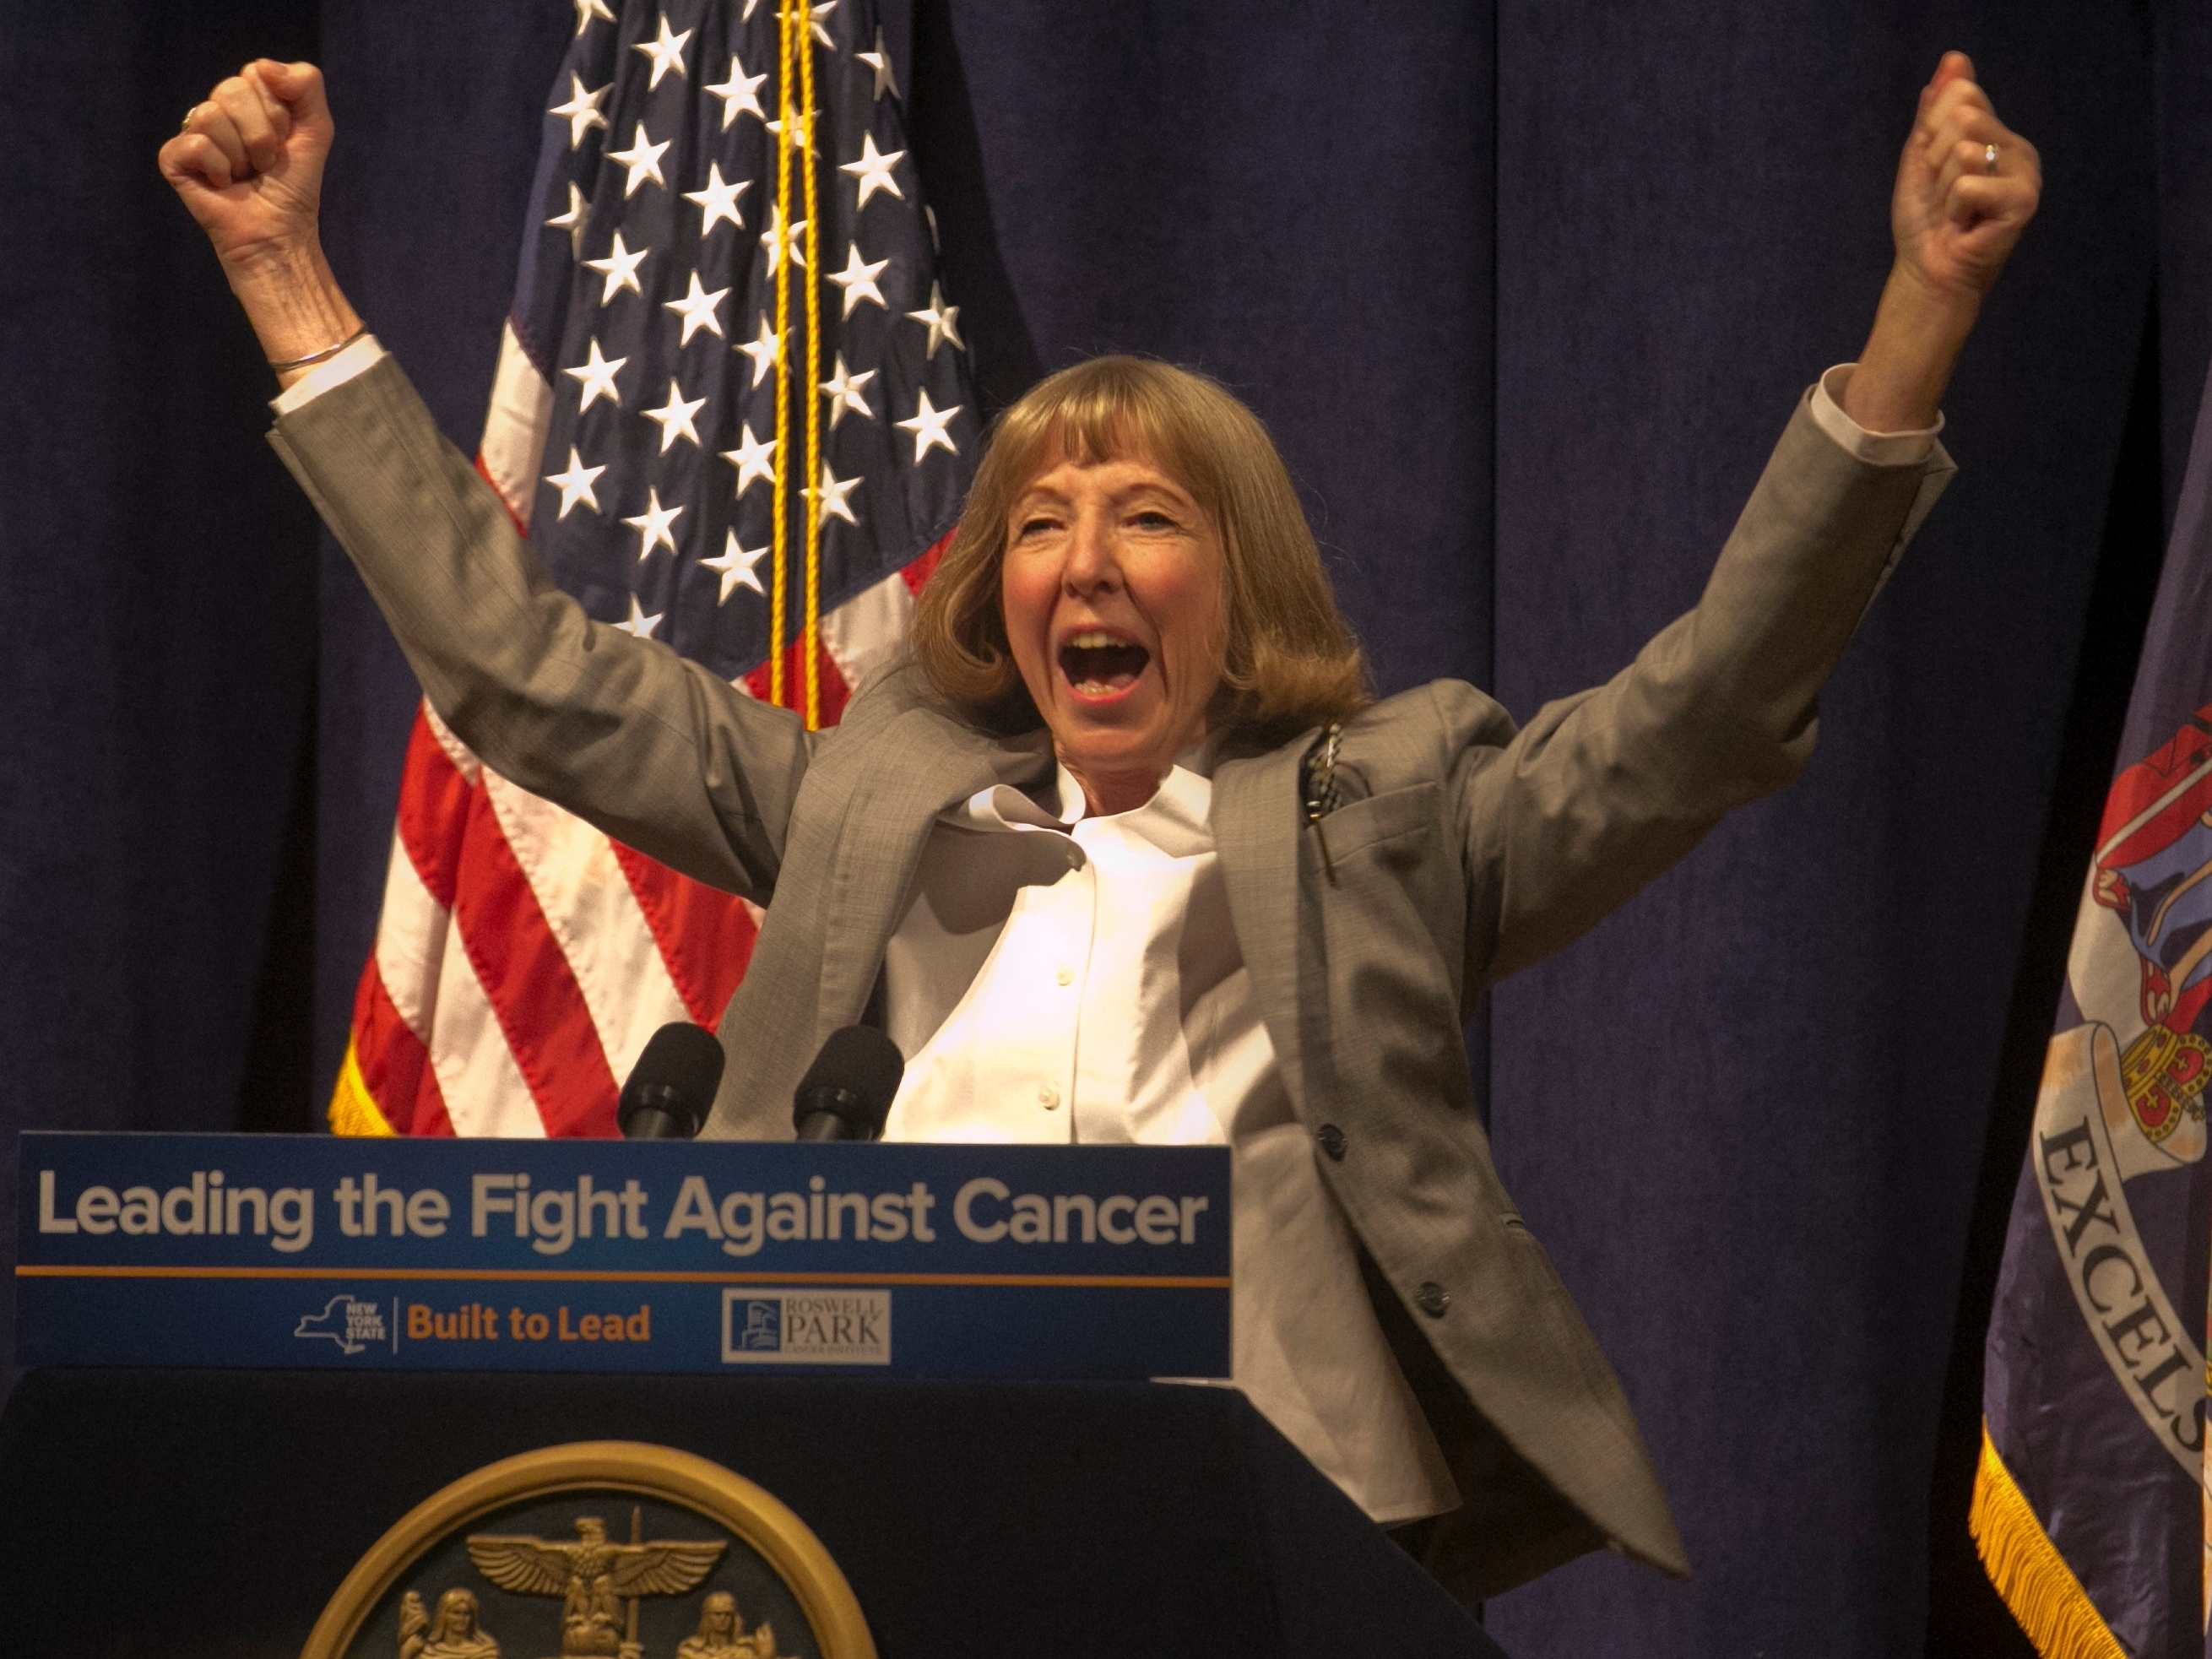 Candace Johnson, president and CEO of Roswell Park Cancer Institute, announced the exciting news that clinical trials of a new cancer vaccine will begin soon. (John Hickey/Buffalo News)